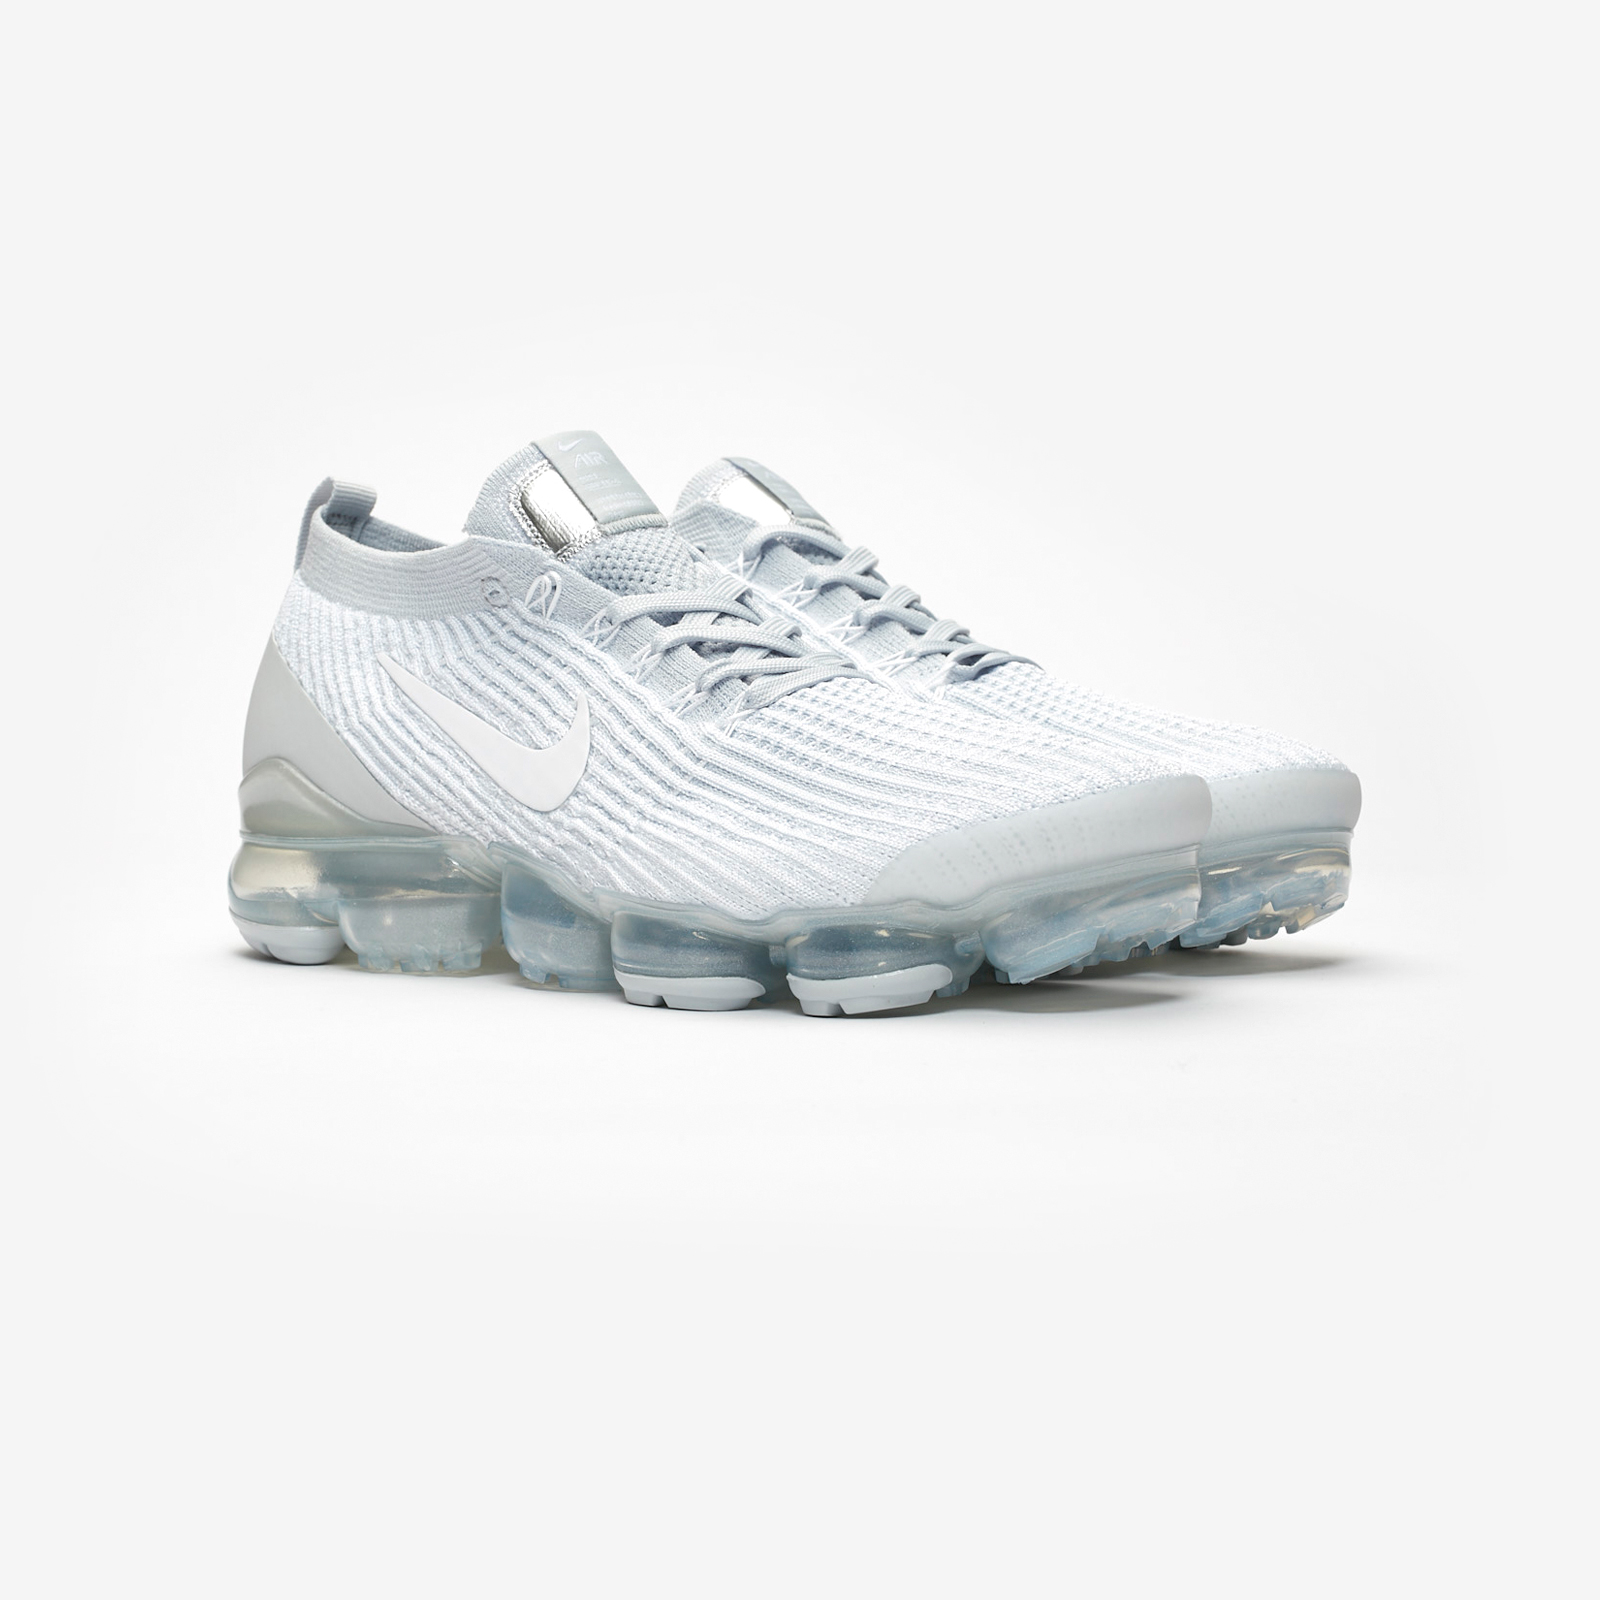 separation shoes c2fdd deca4 Nike Running Air Vapormax Flyknit 3